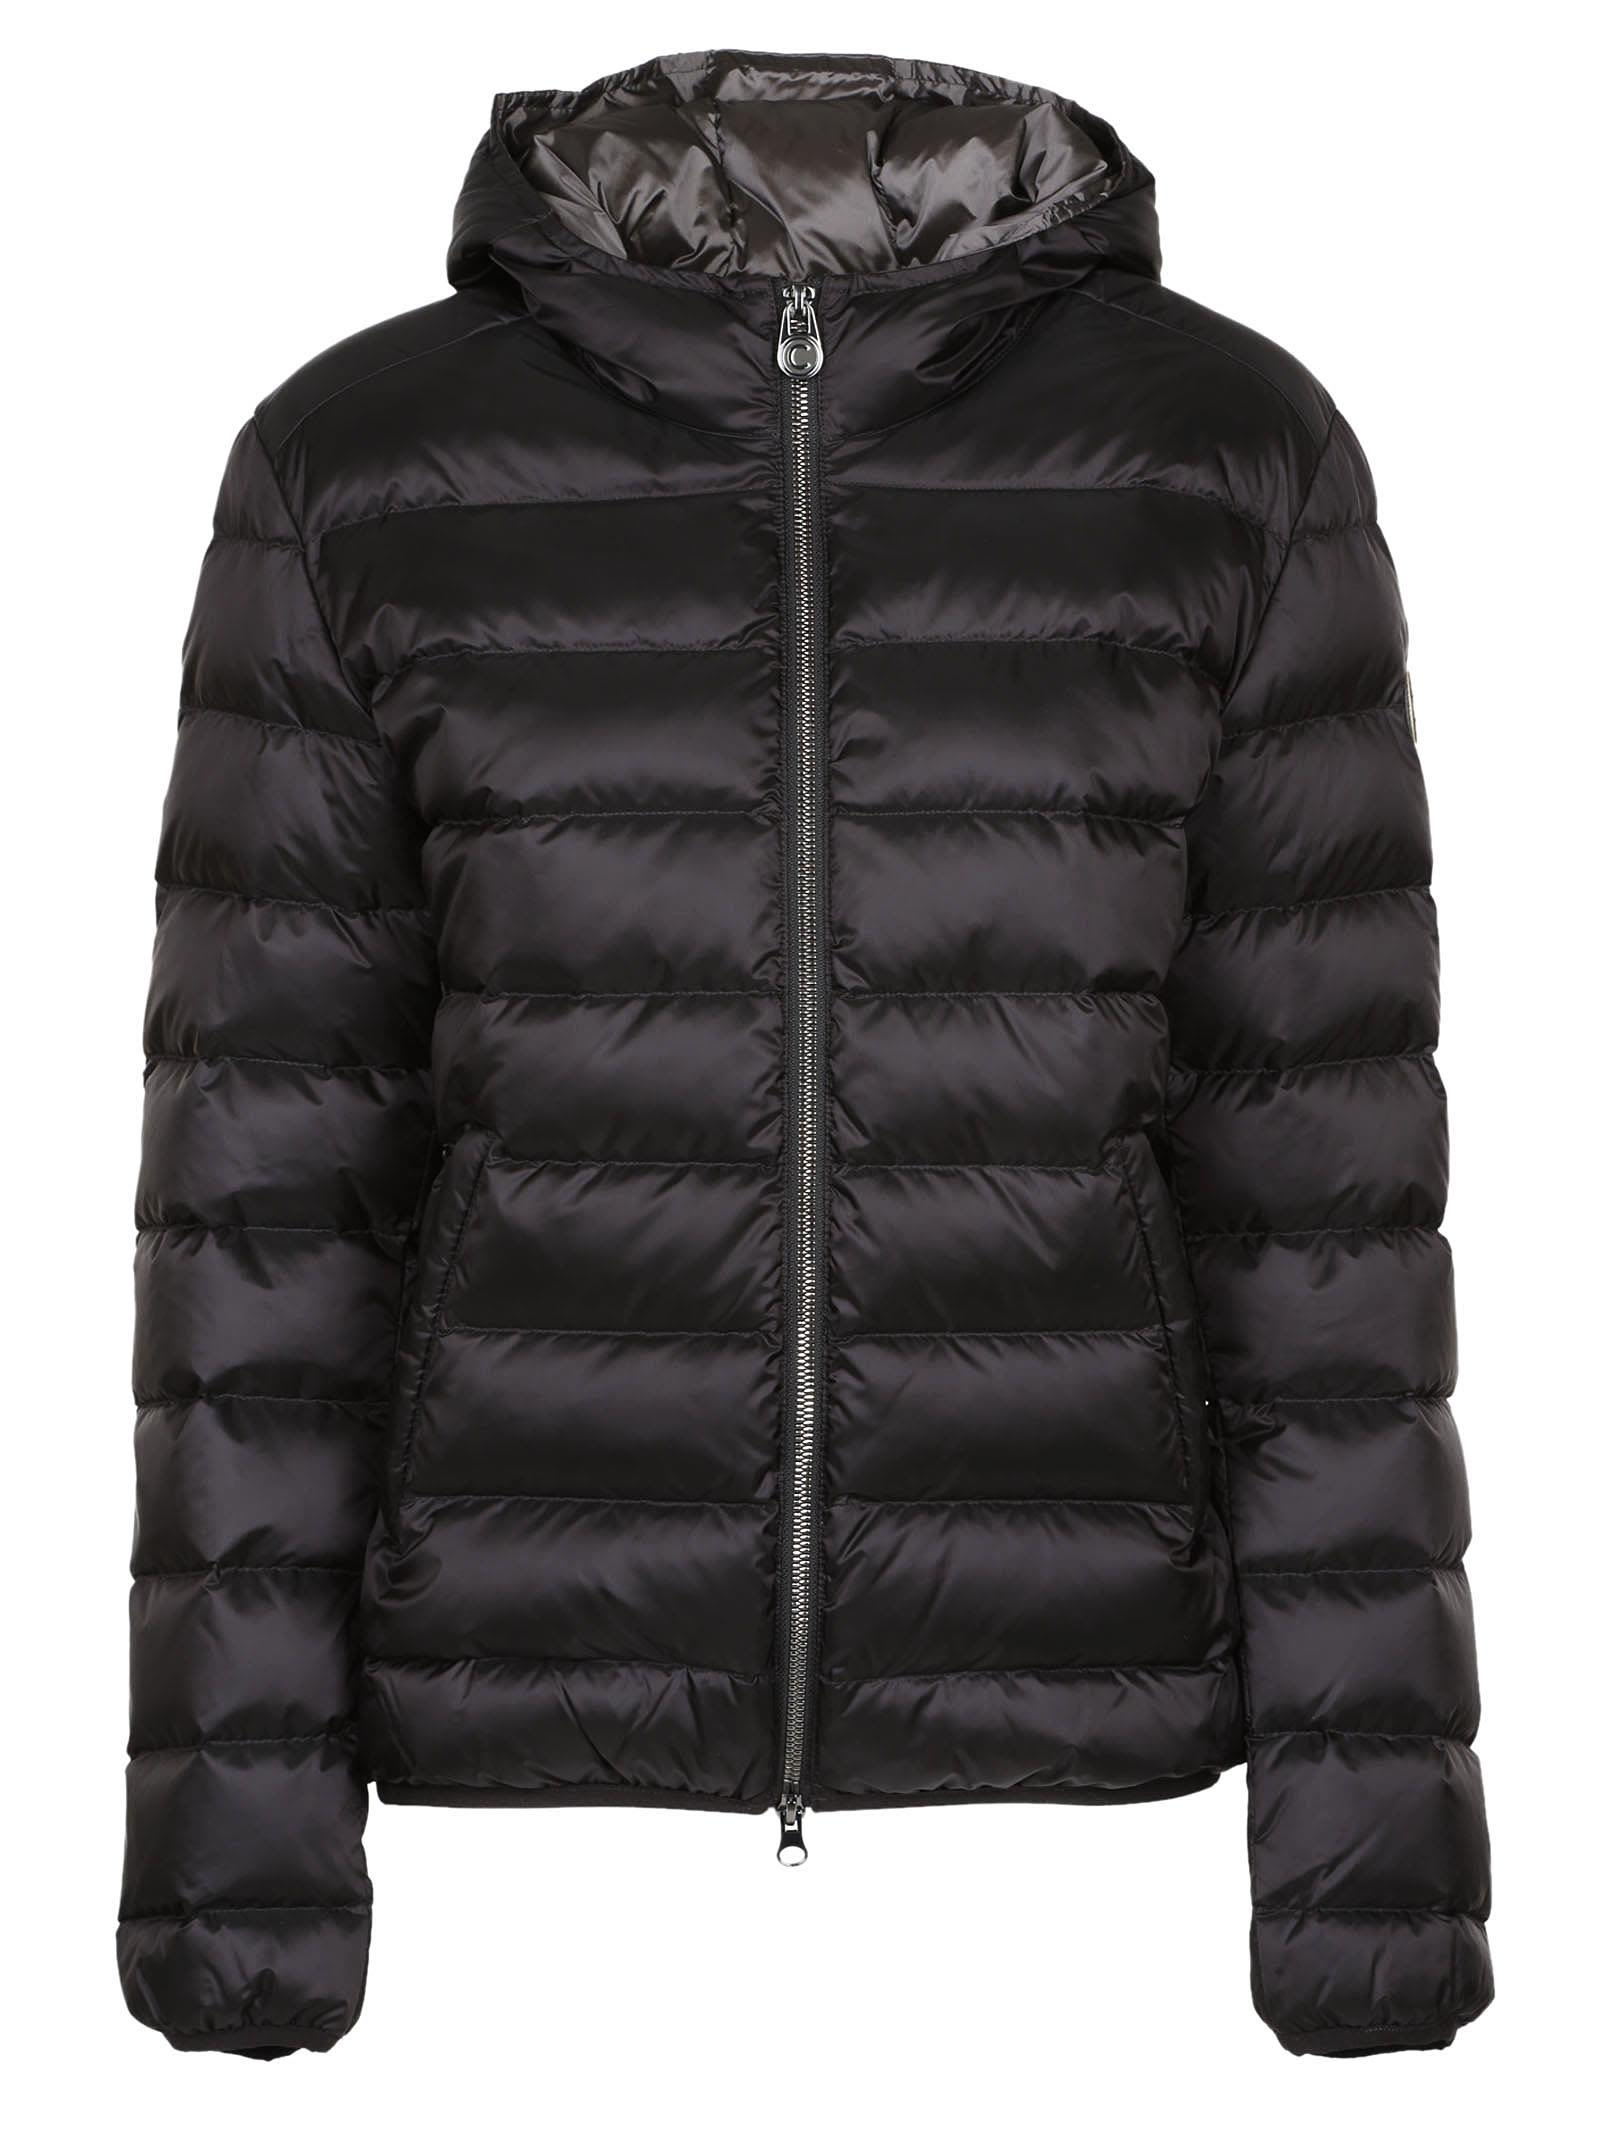 Colmar - Colmar Zipped Padded Jacket - Black, Women's Down Jackets ...